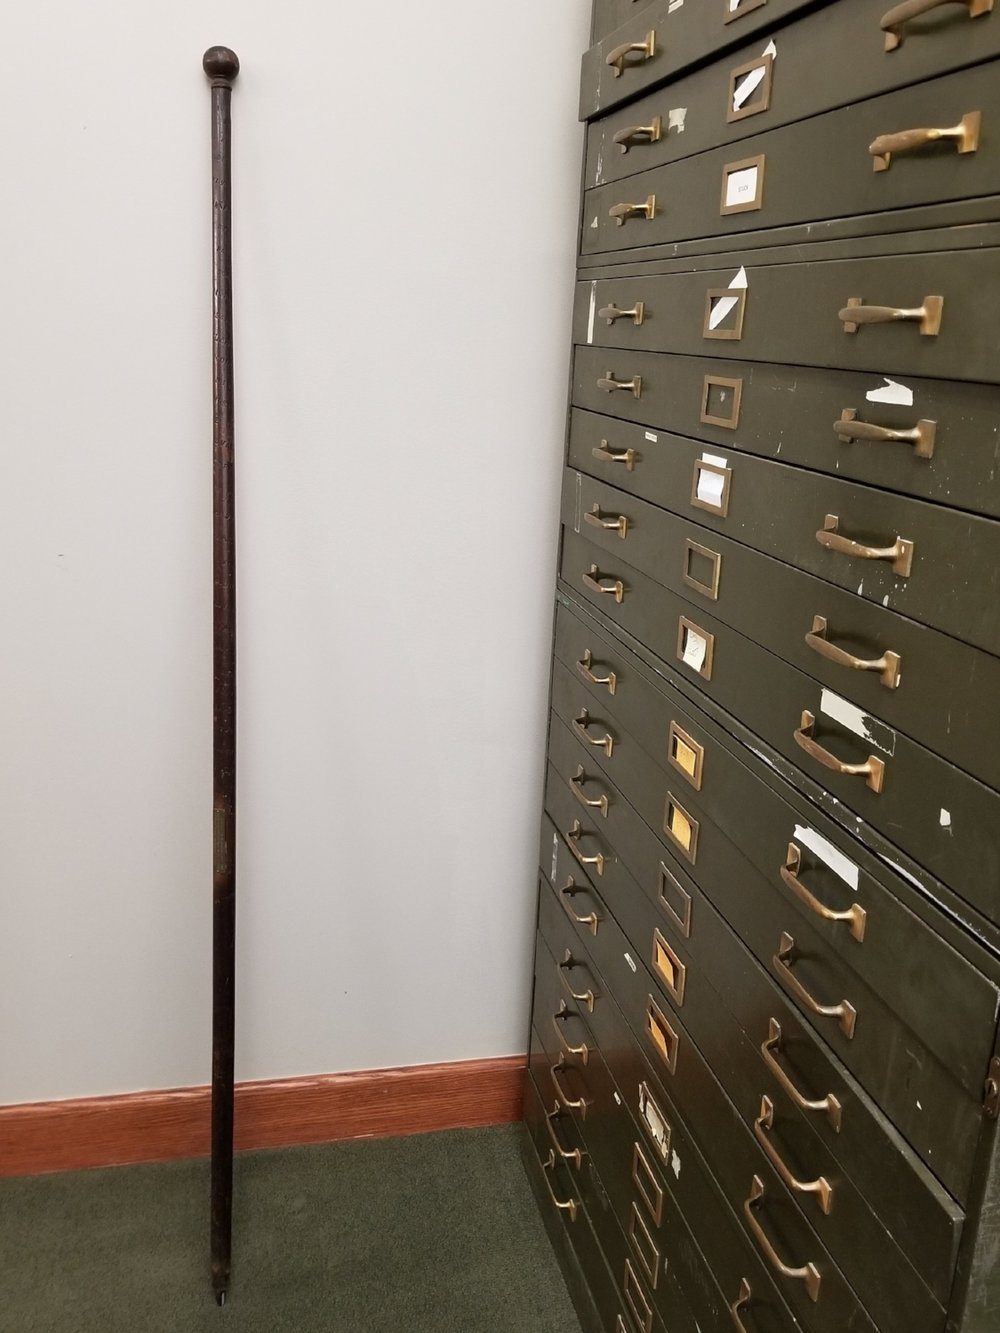 This alpenstock is of the oldest variety. It stands about five and a half feet tall and has a sharp metal spike at the bottom.